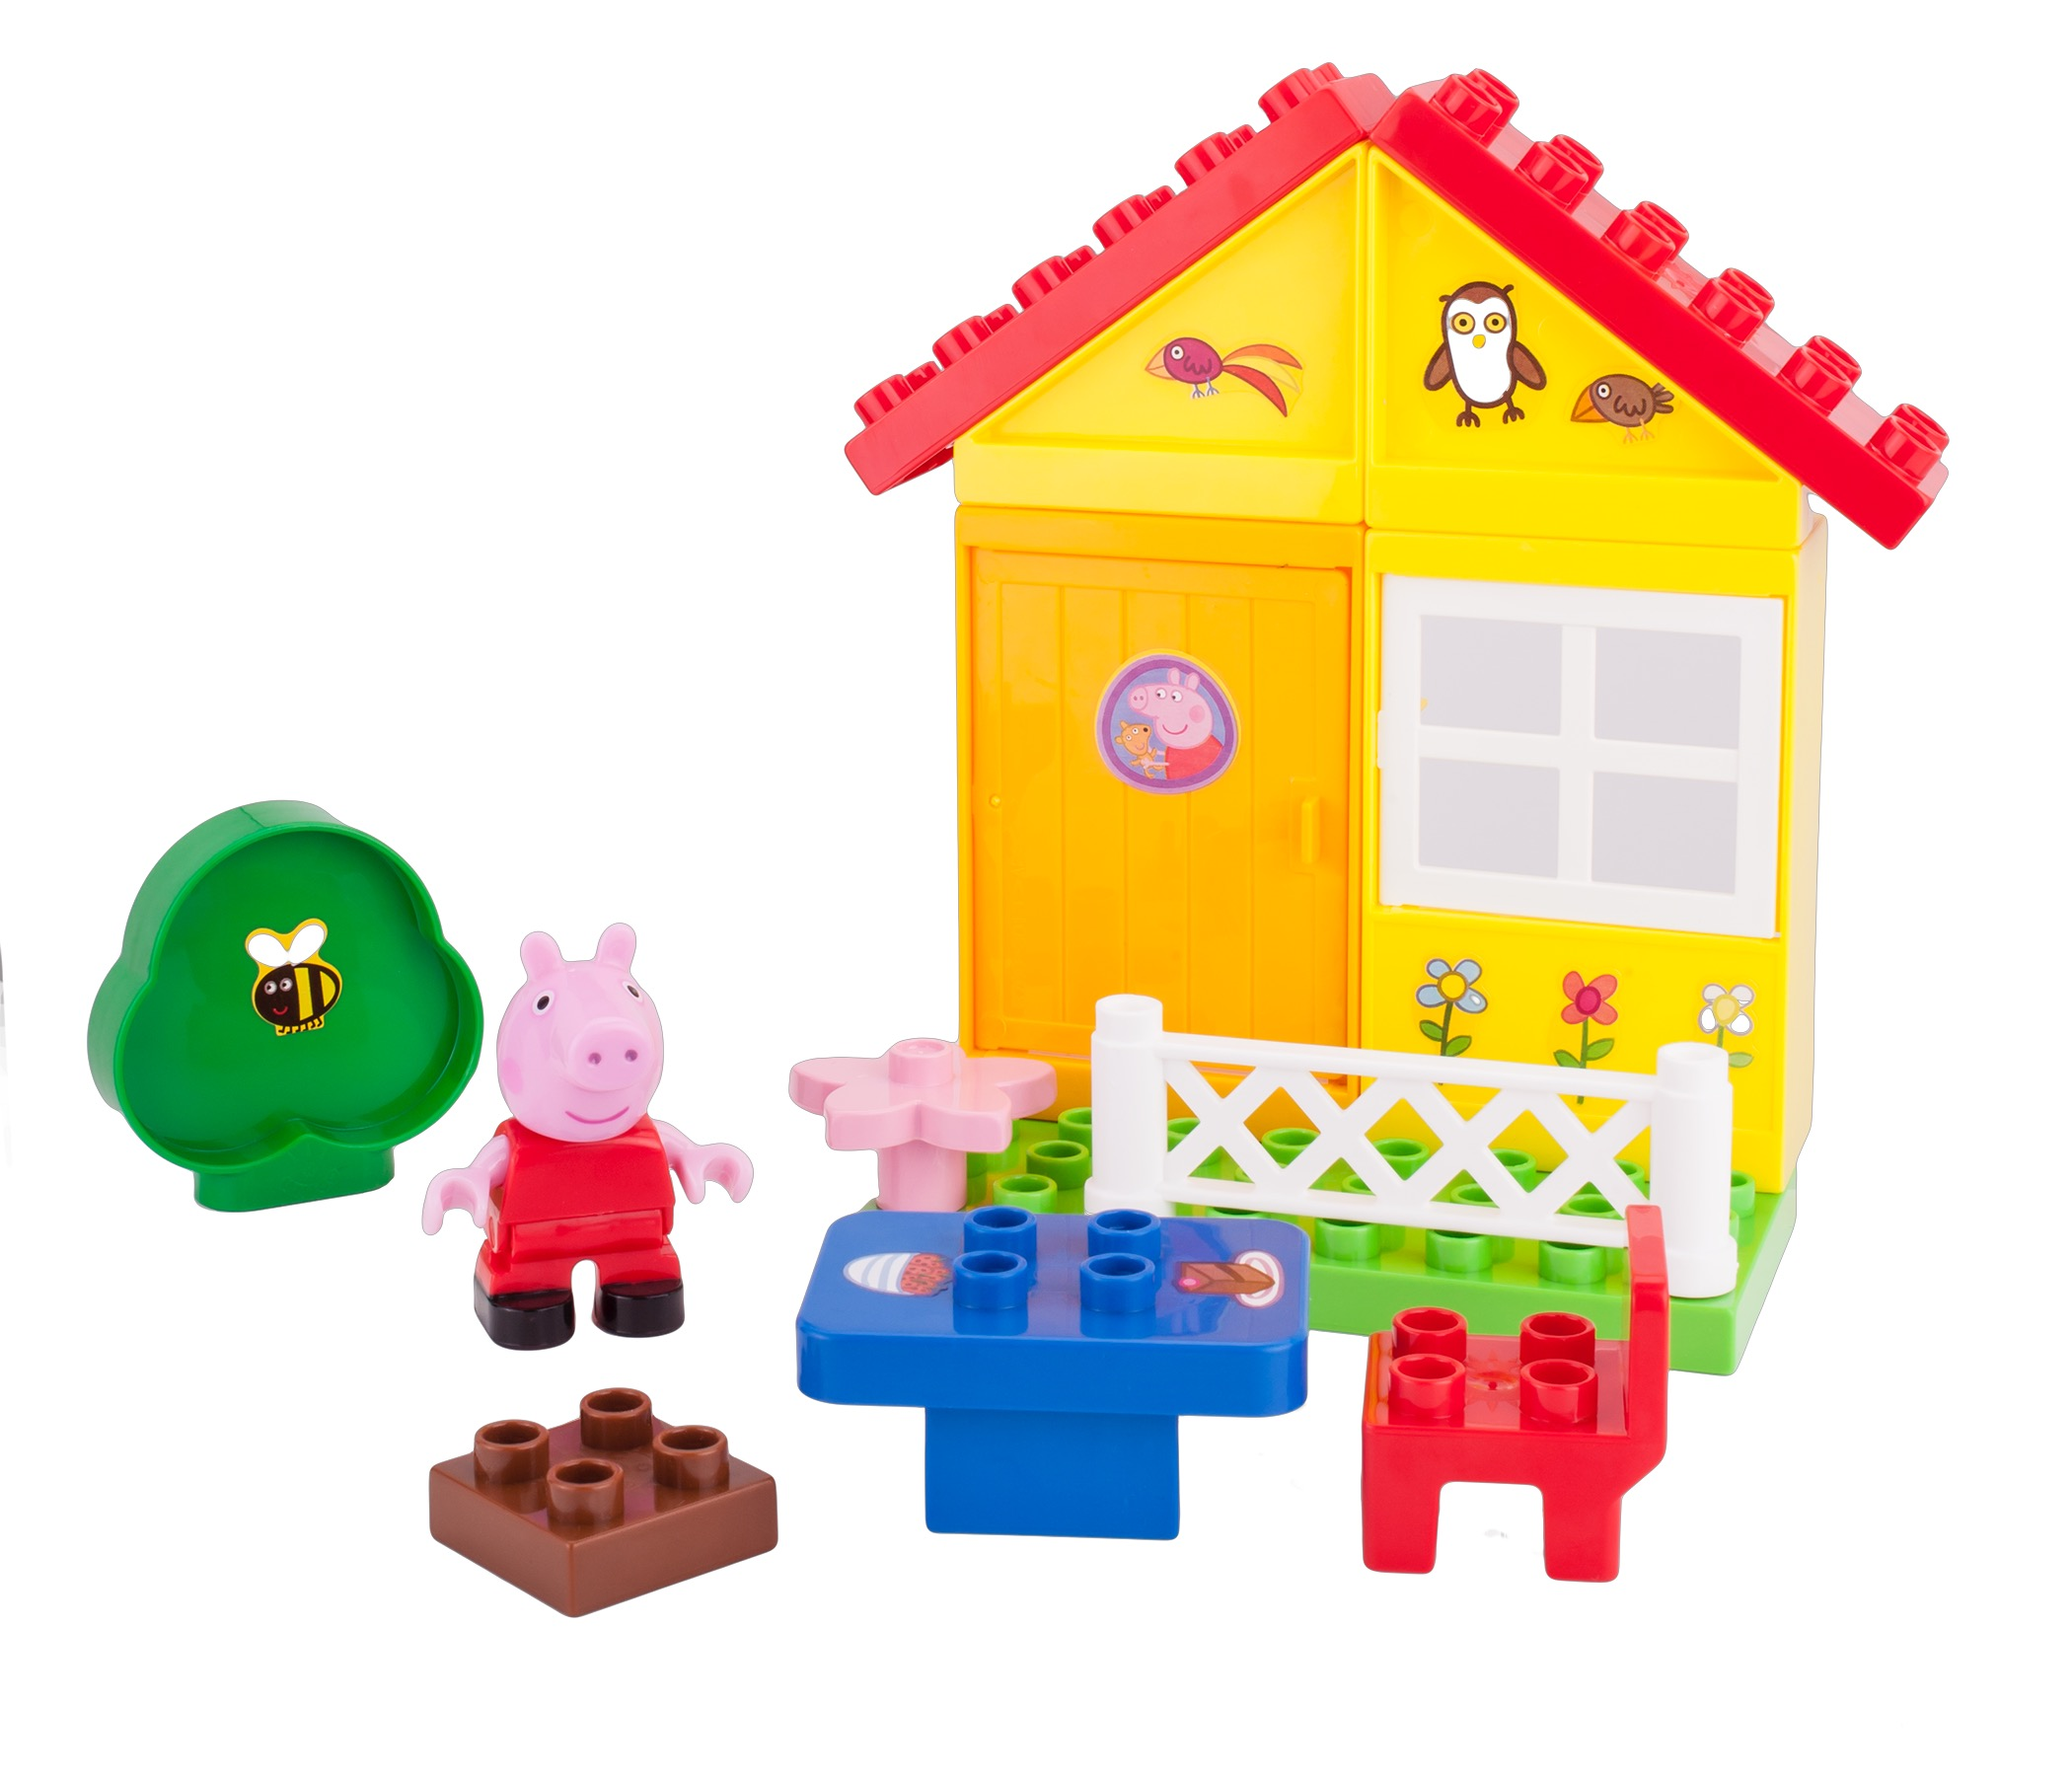 Peppa's Garden House Construction Set